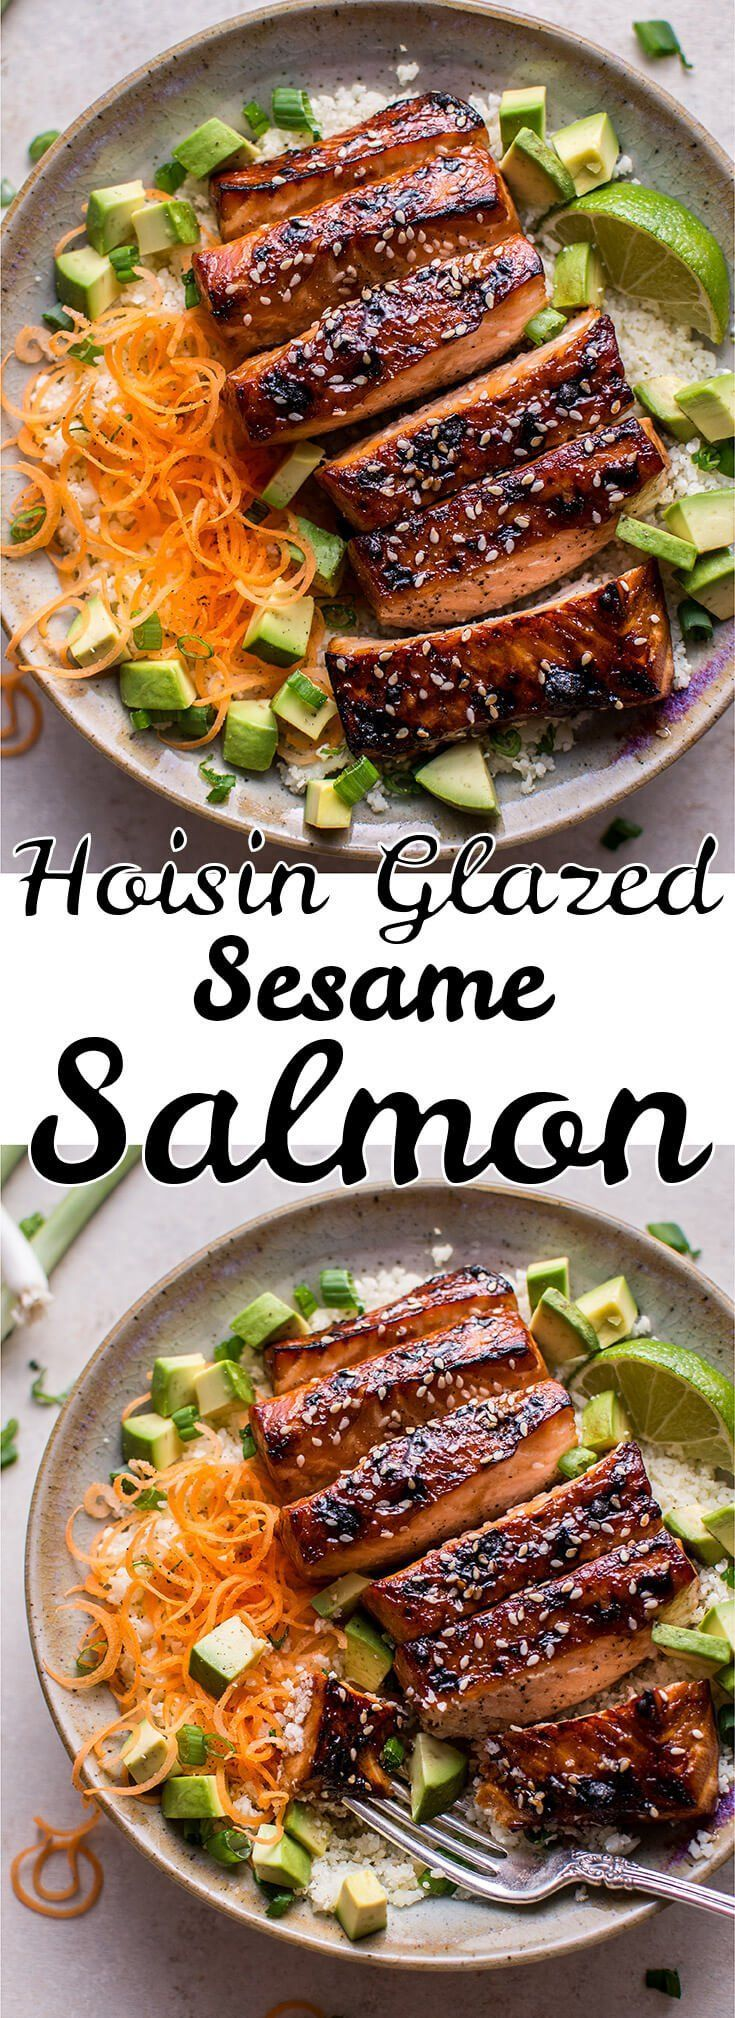 This glazed hoisin and sesame salmon bowl is a delicious low-carb meal idea, served on a bed of cauliflower rice. #seafoodrecipes